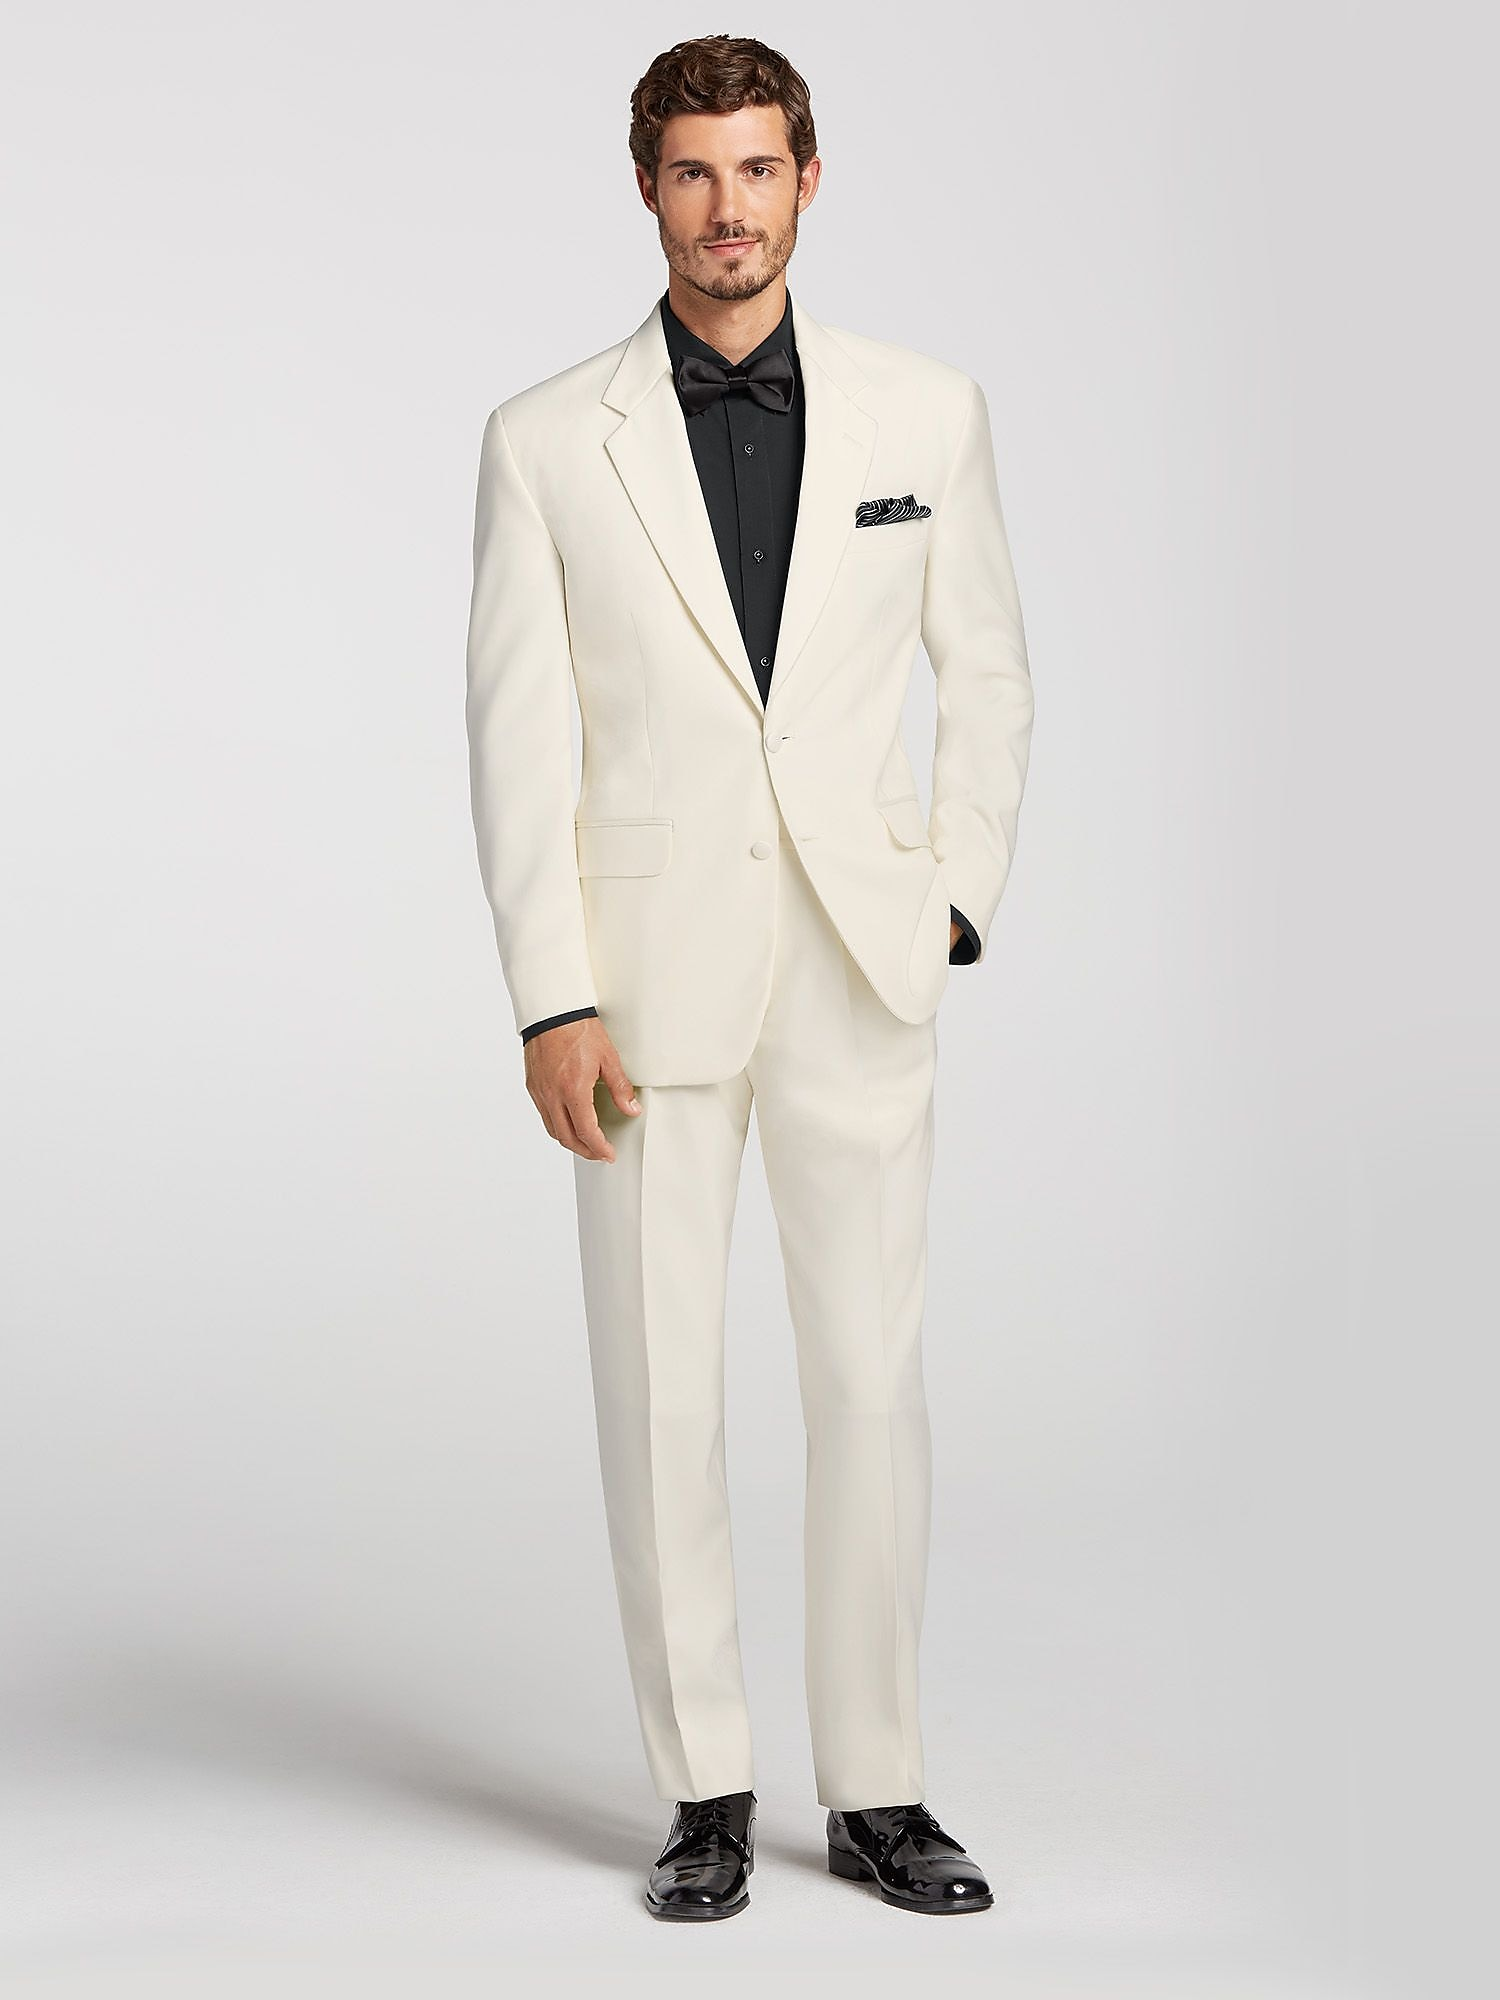 Pre-Styled Tuxedos for Special Occasions & Formal Events | Men\'s ...